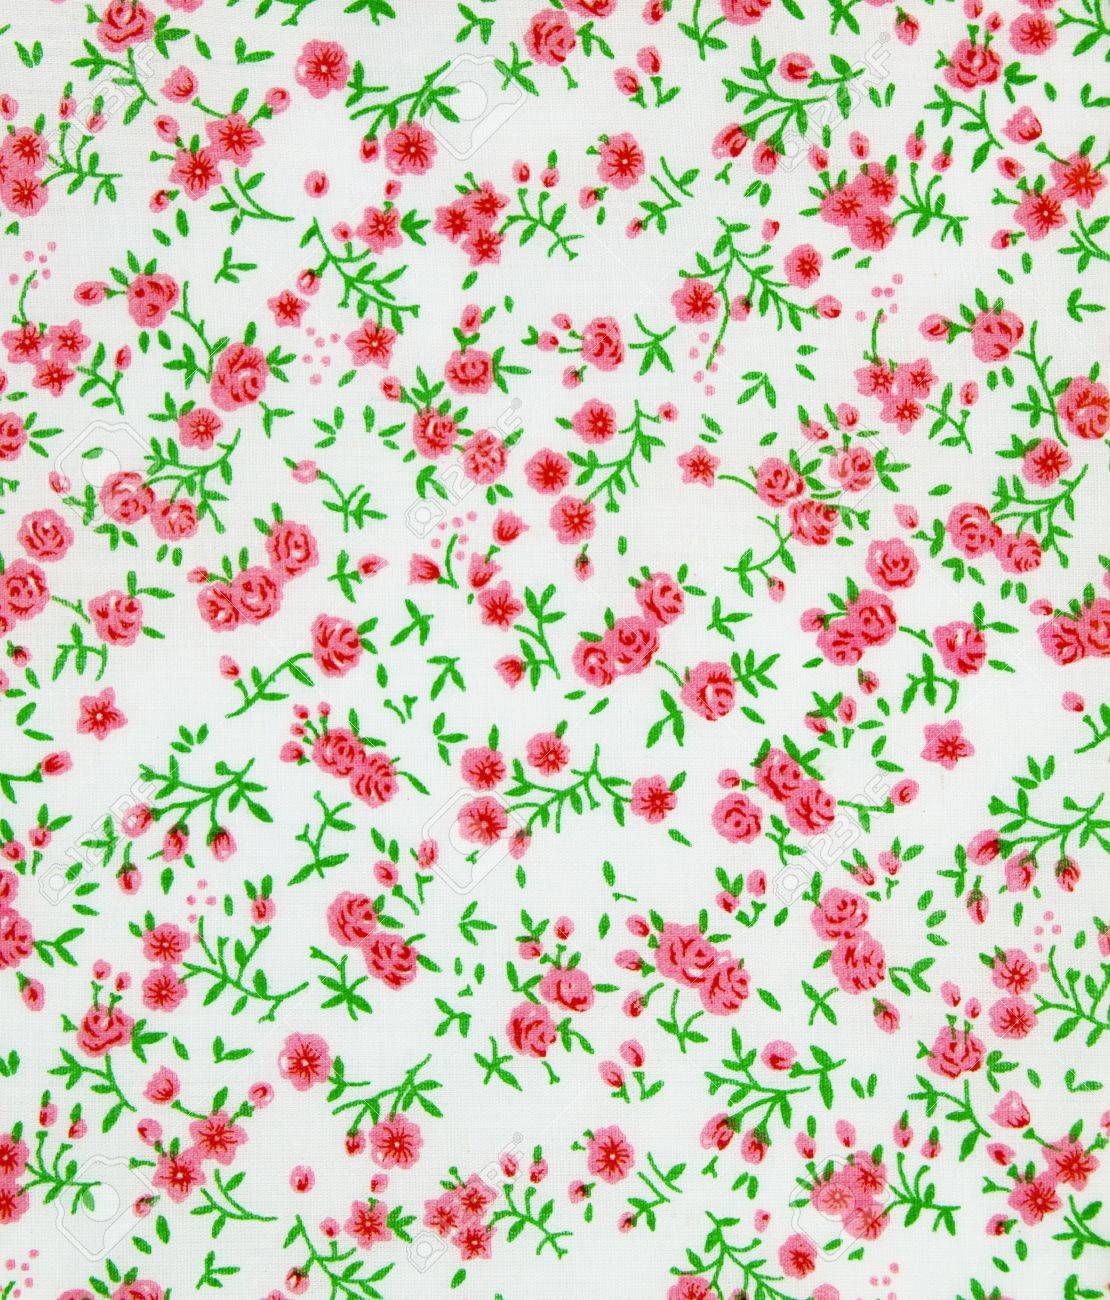 red rose background, seamless red design pattern Stock Photo - 14408483